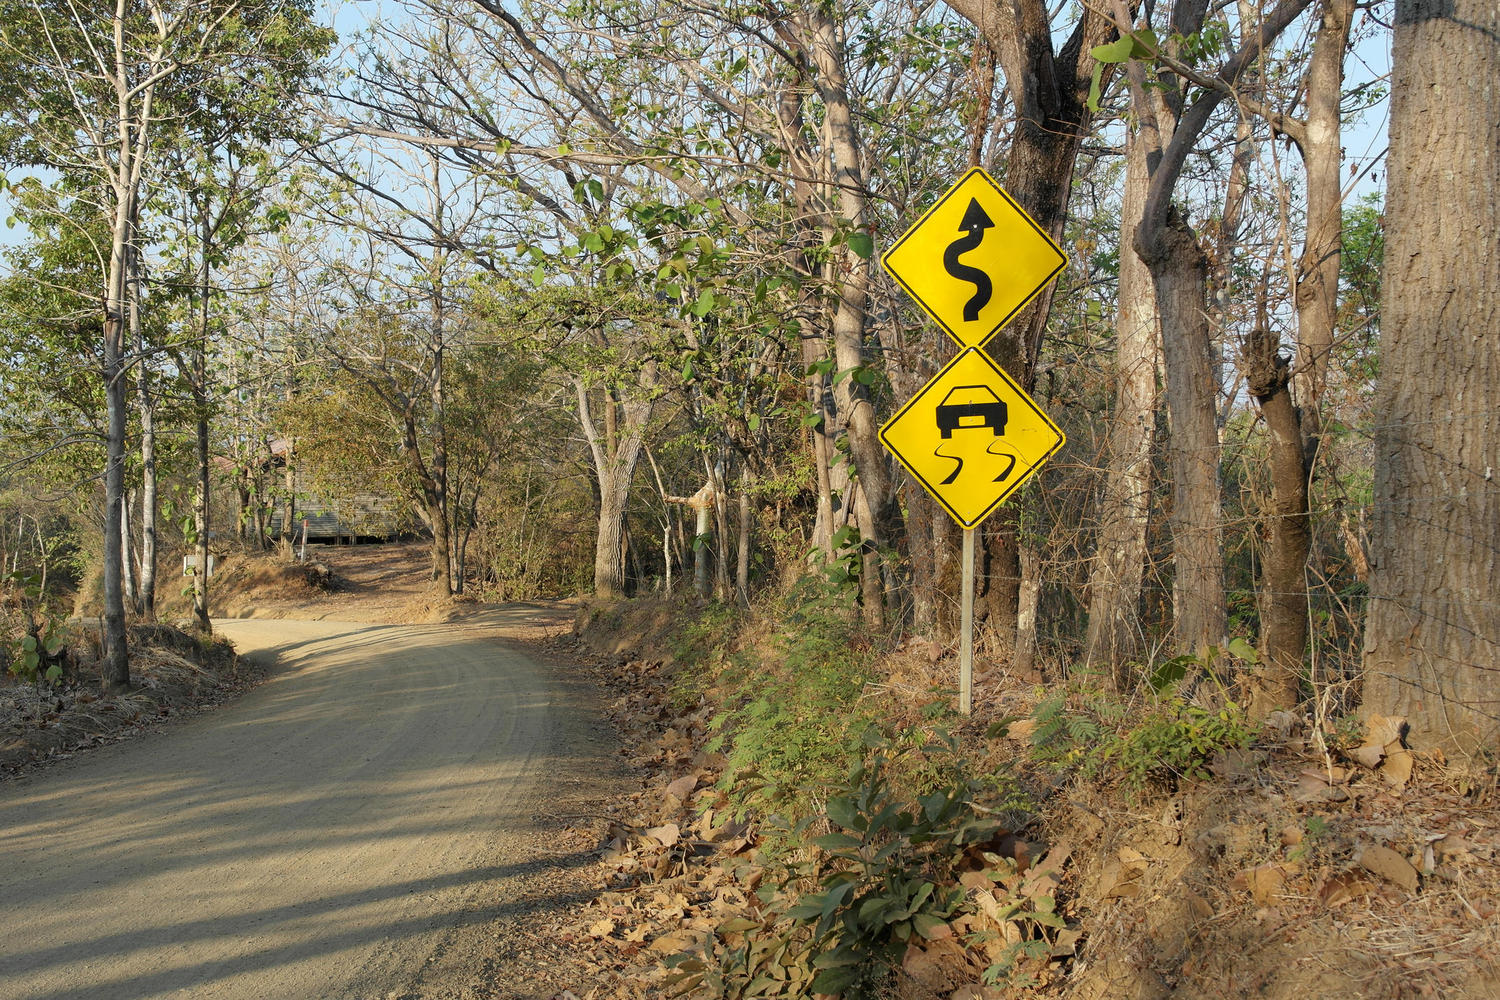 Road signs above Ostional, Nicoya Peninsula